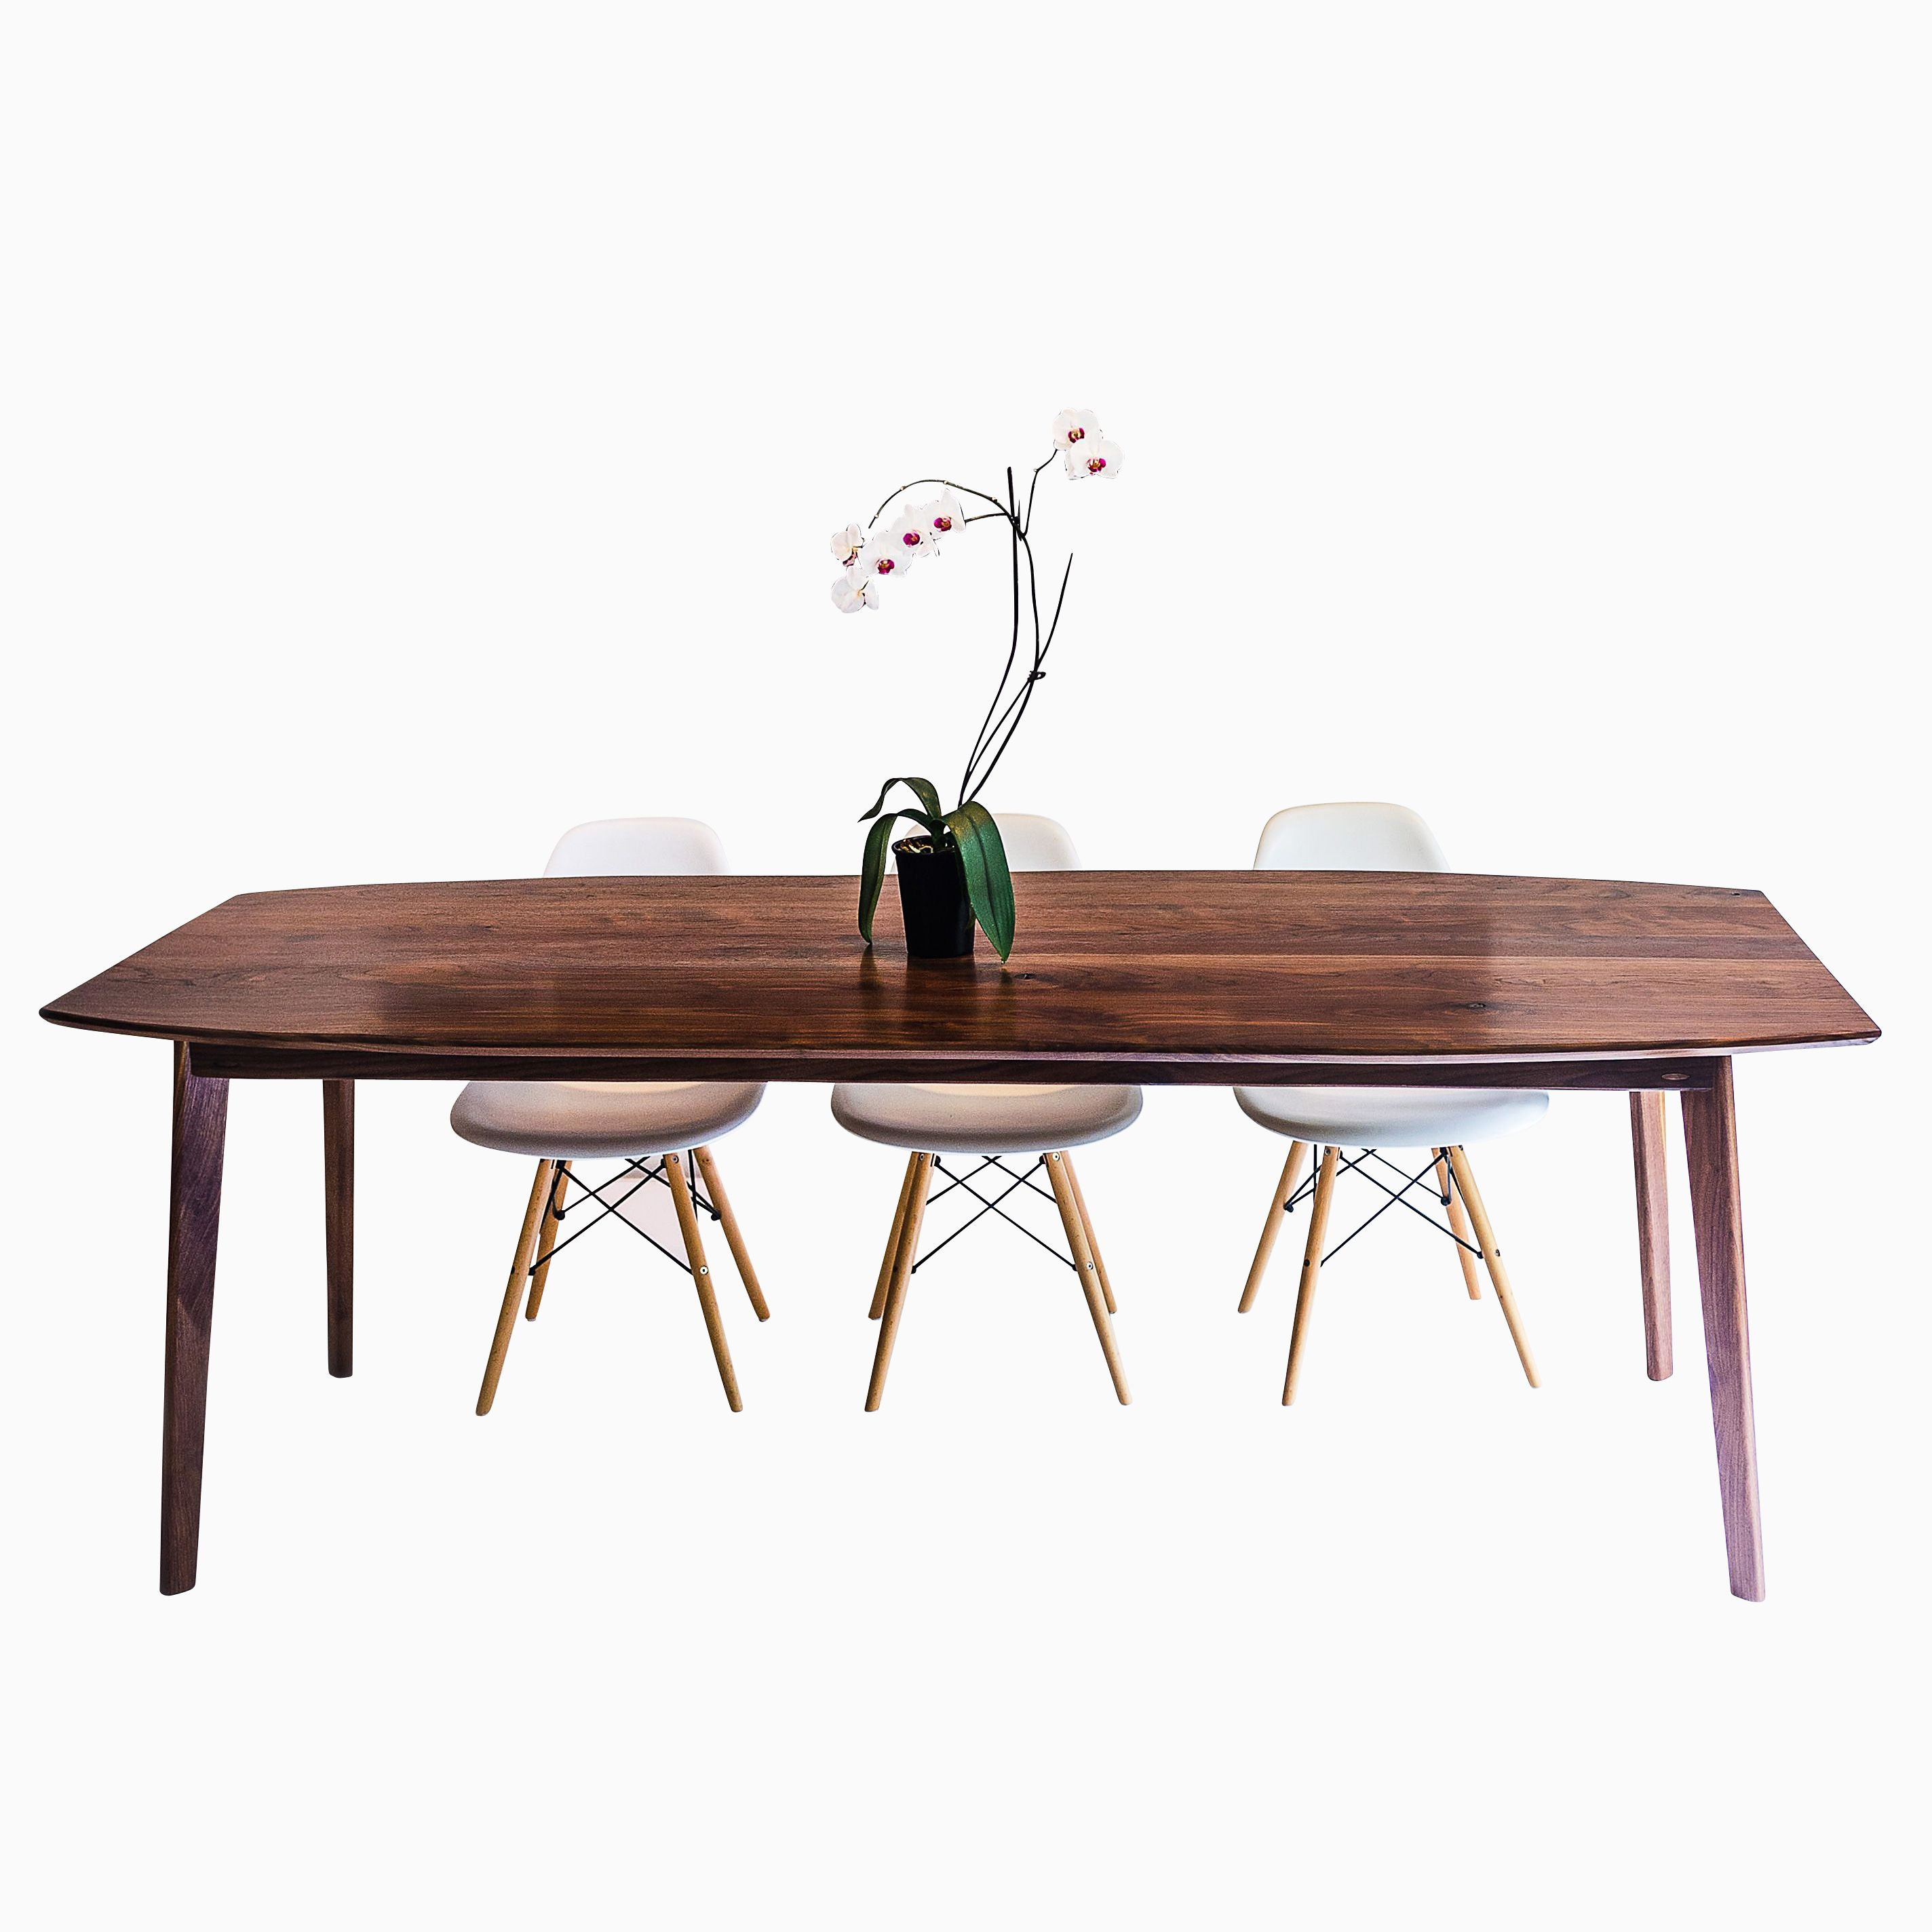 Mid century modern dining chairs for sale - Buy A Custom The Santa Monica Solid Black Walnut Dining Table